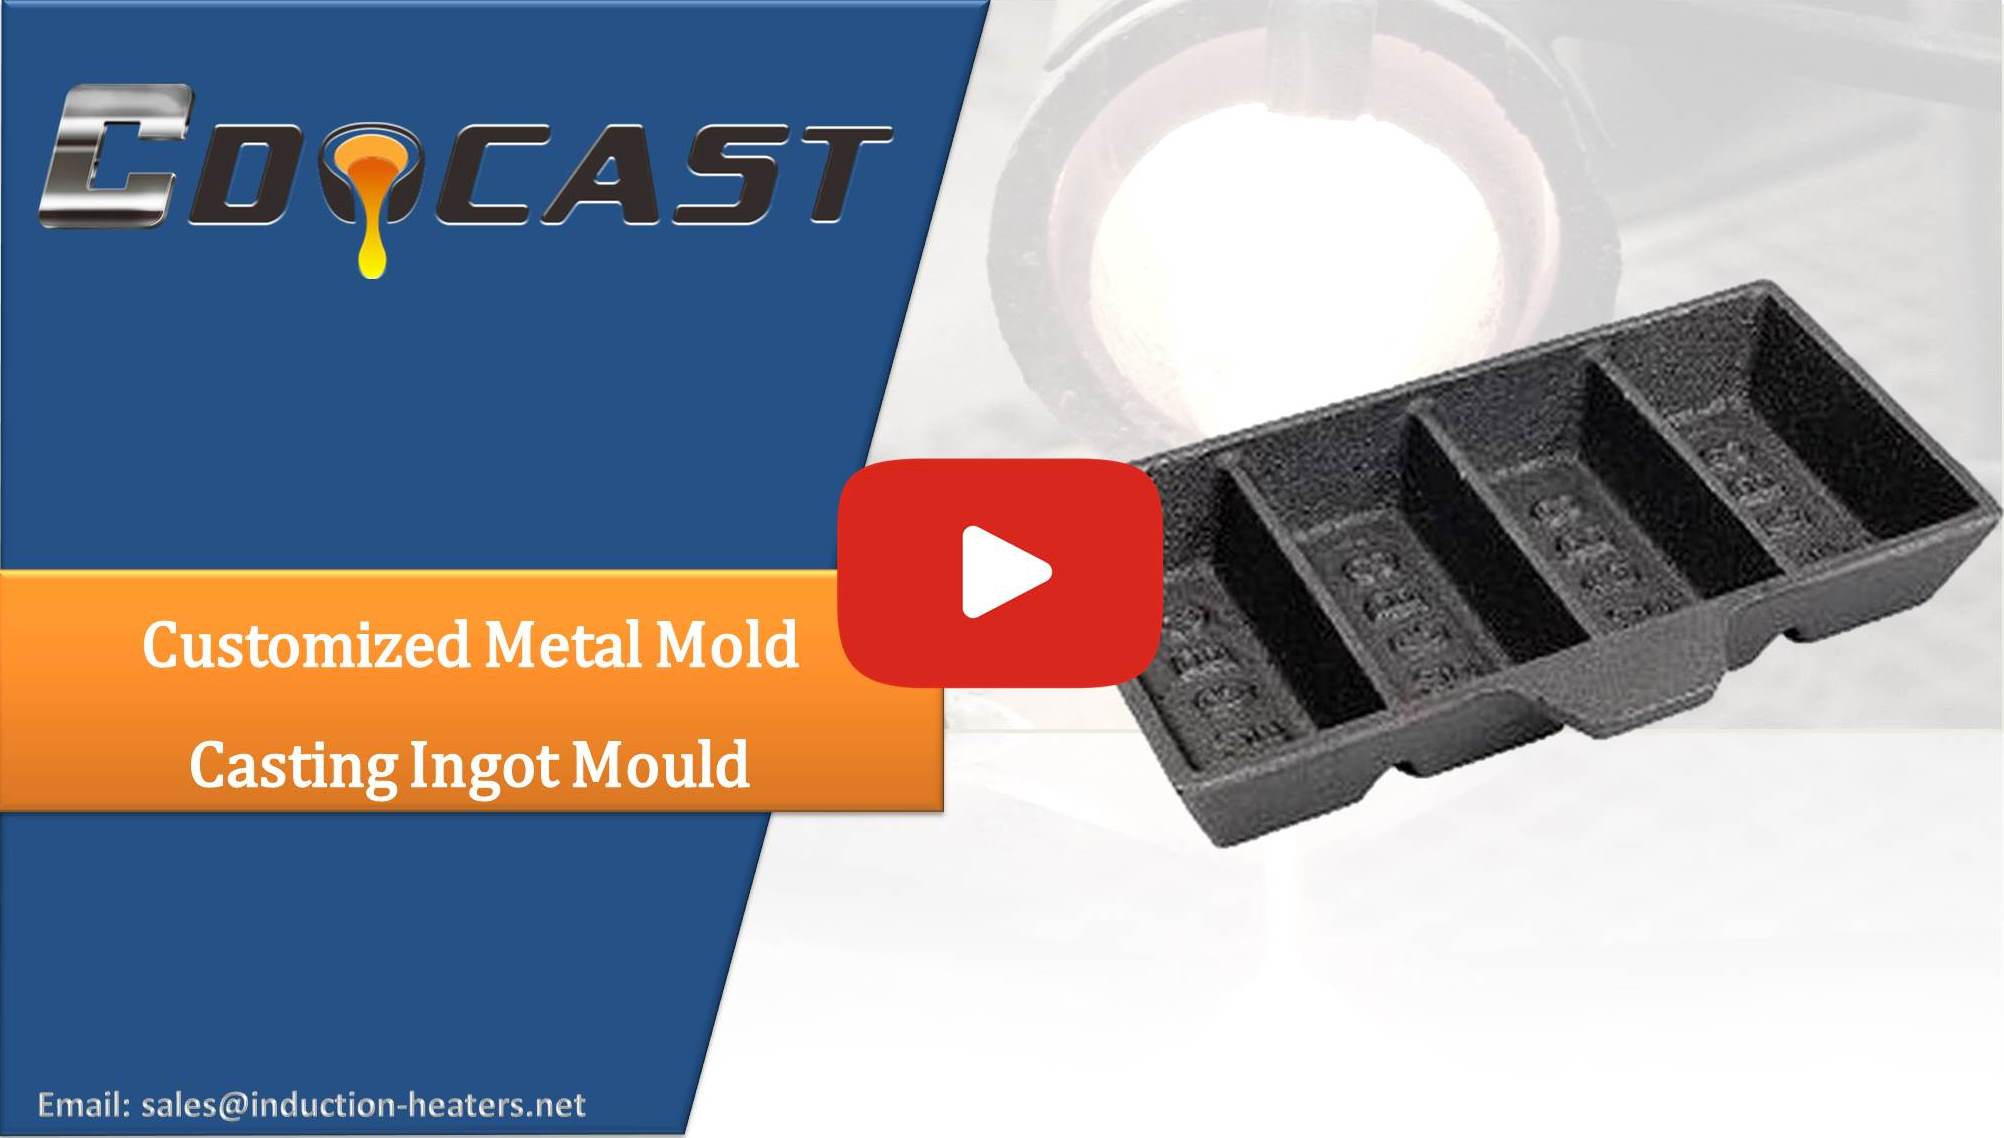 Customized metal mold casting ingot mould